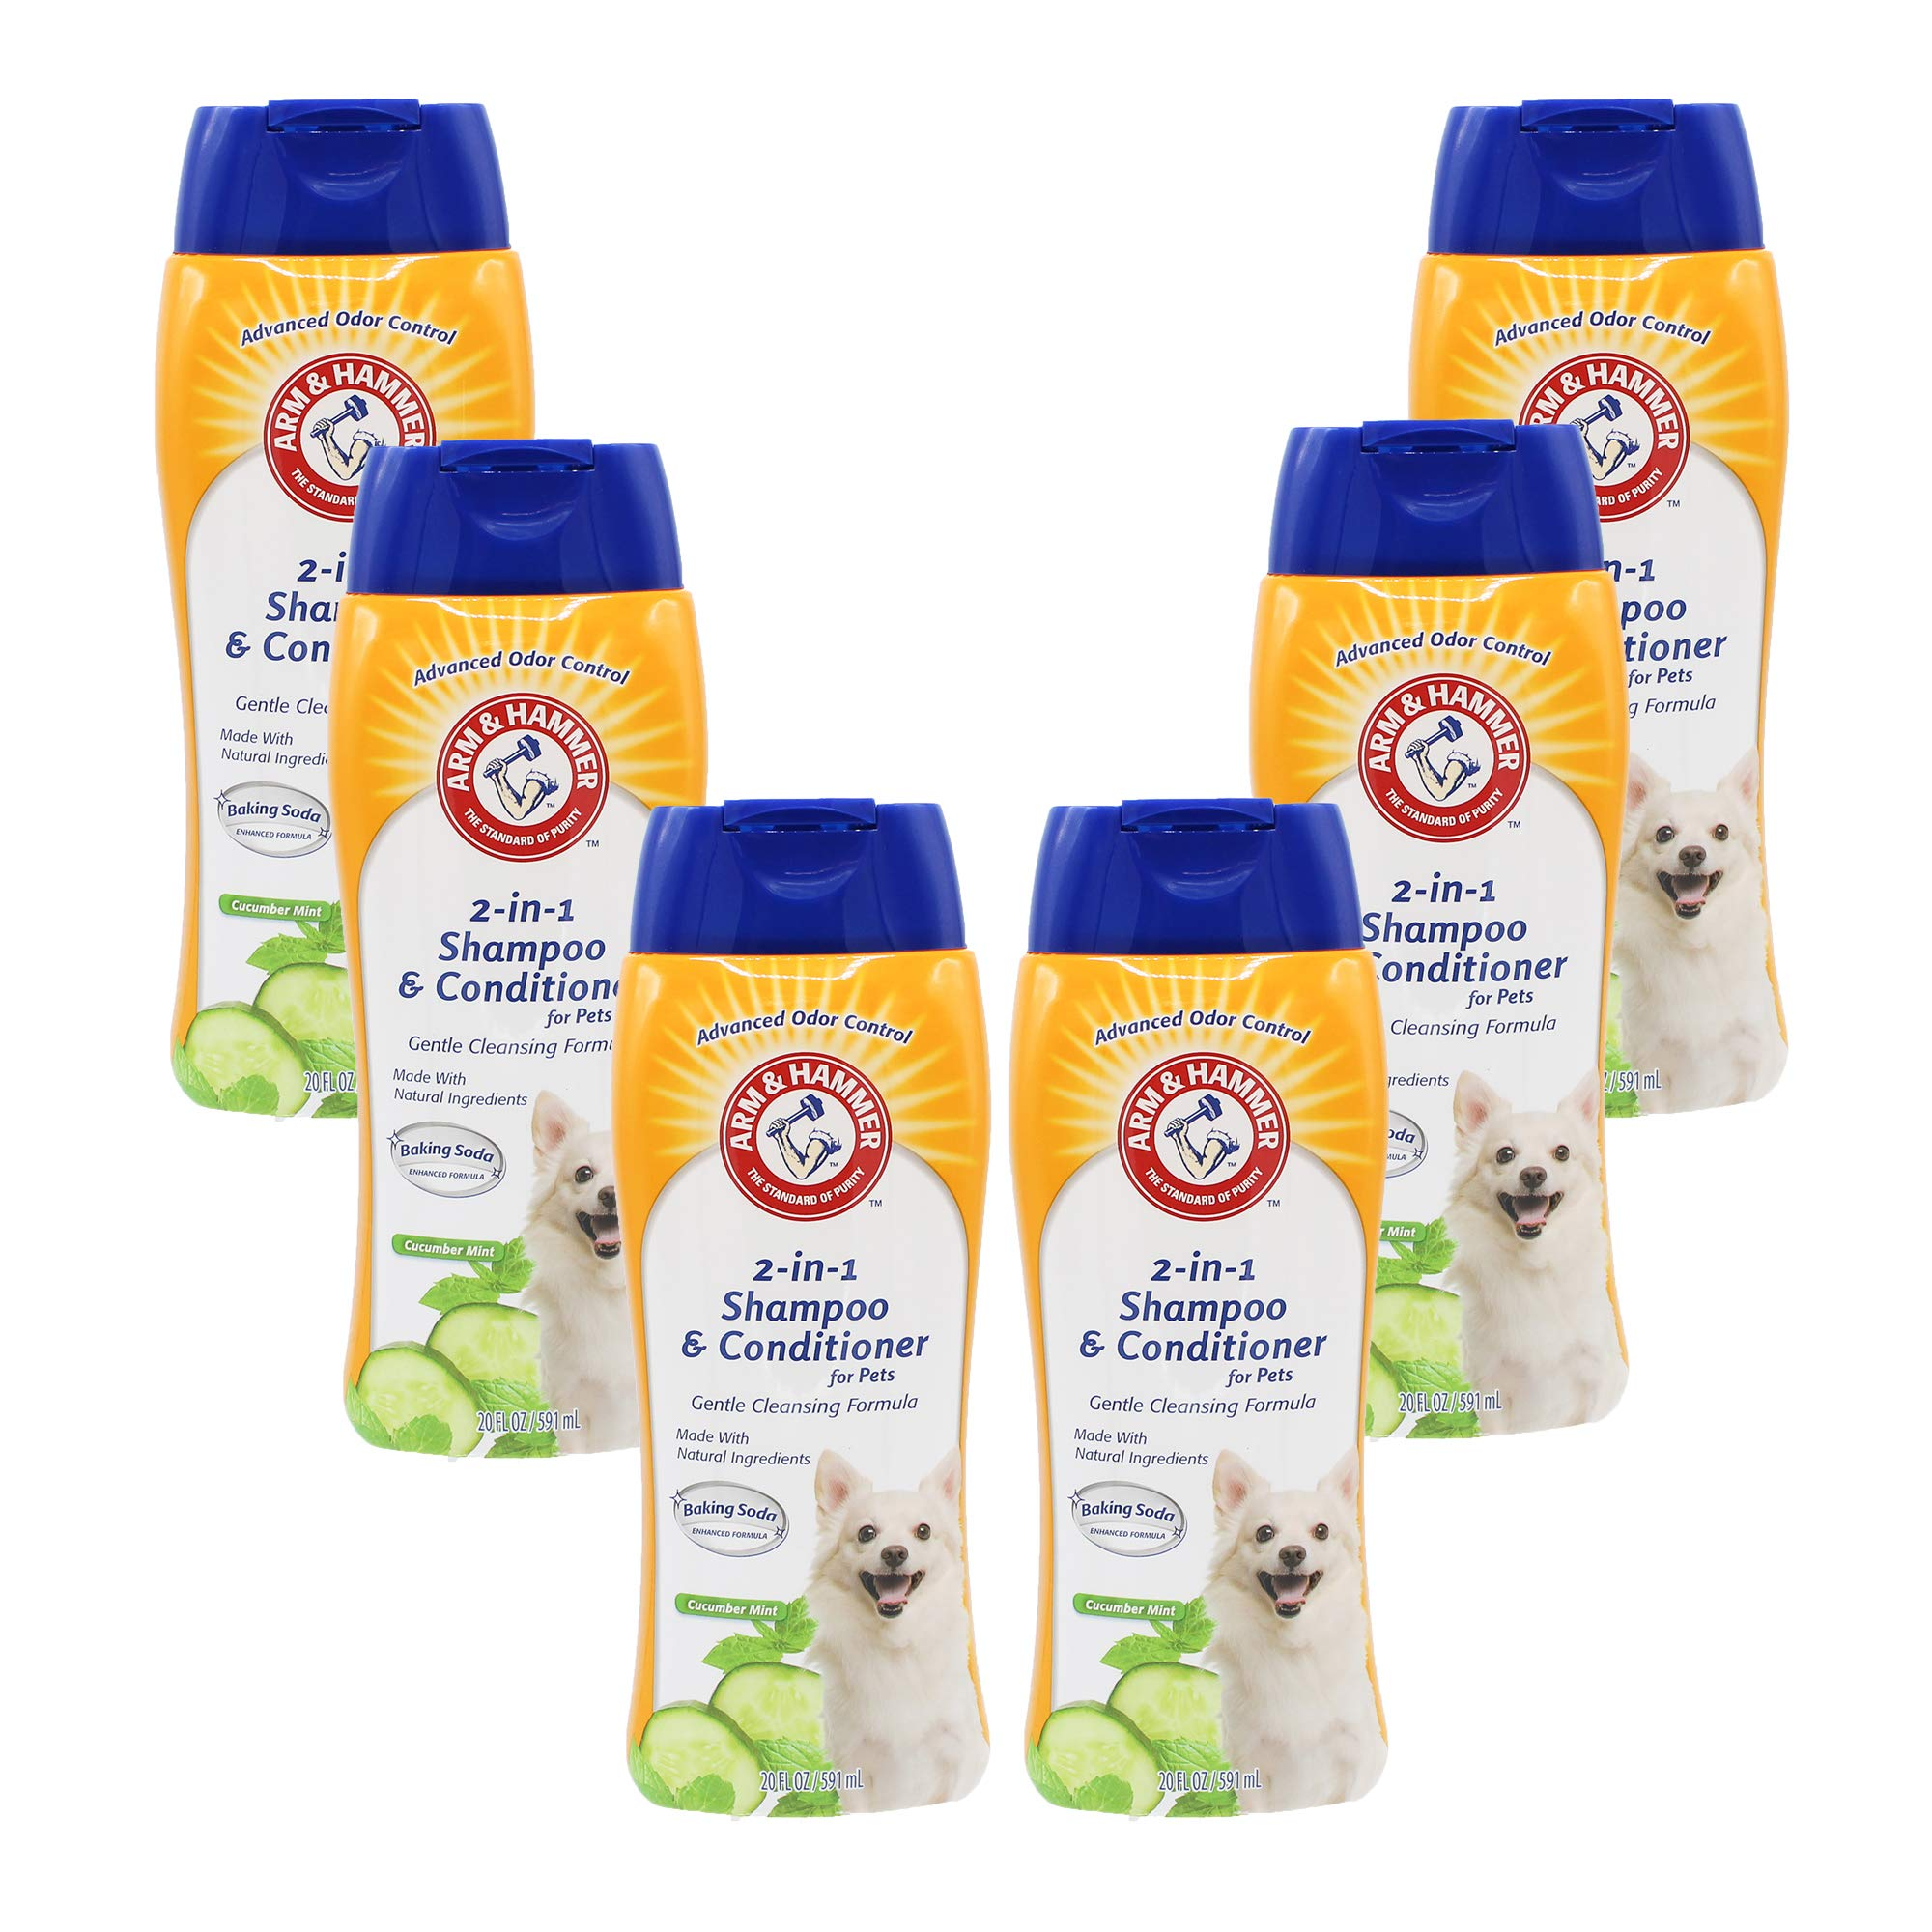 ARM & HAMMER 2-in-1 Shampoo & Conditioner for Dogs | Dog Shampoo & Conditioner in One | Cucumber Mint, 20 Ounces - 6 Pack by ARM & HAMMER